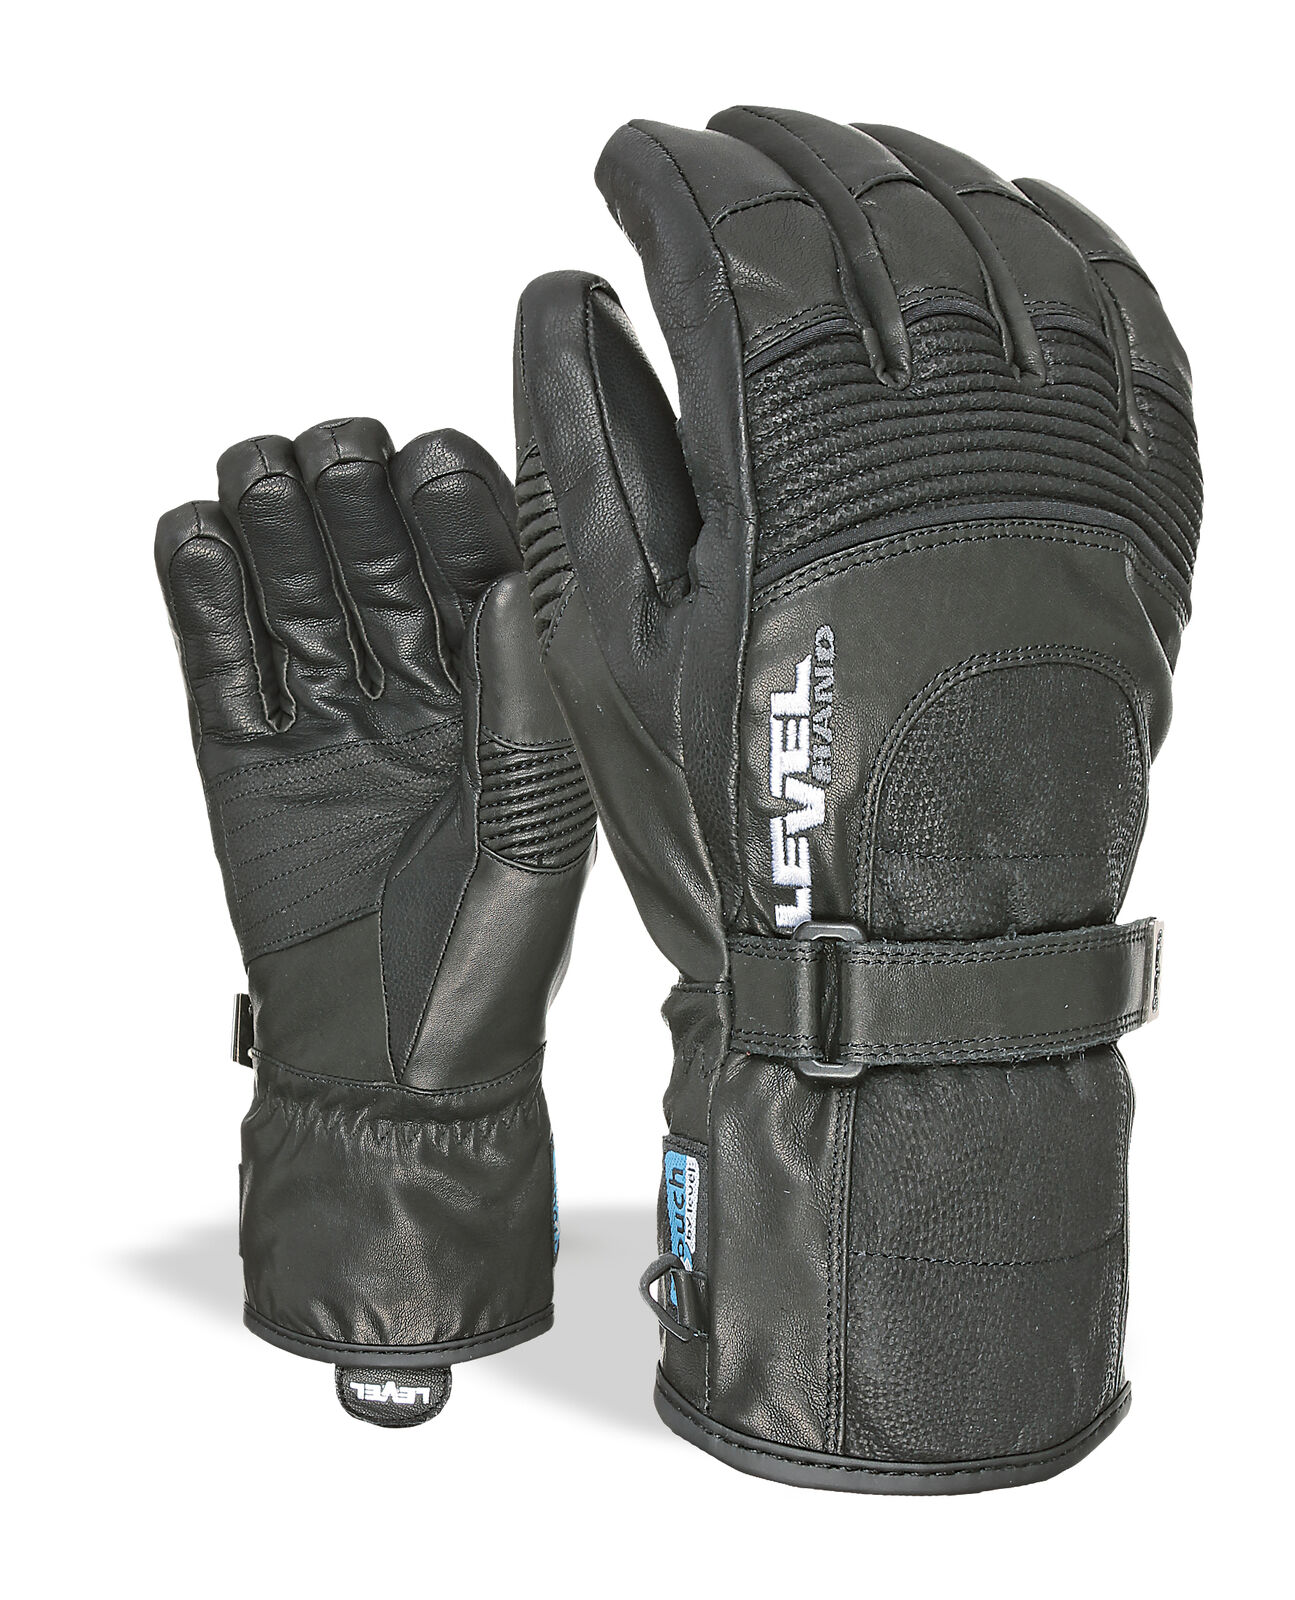 Level Guantes Bombardeo Negro Impermeable Transpirable Cálidos